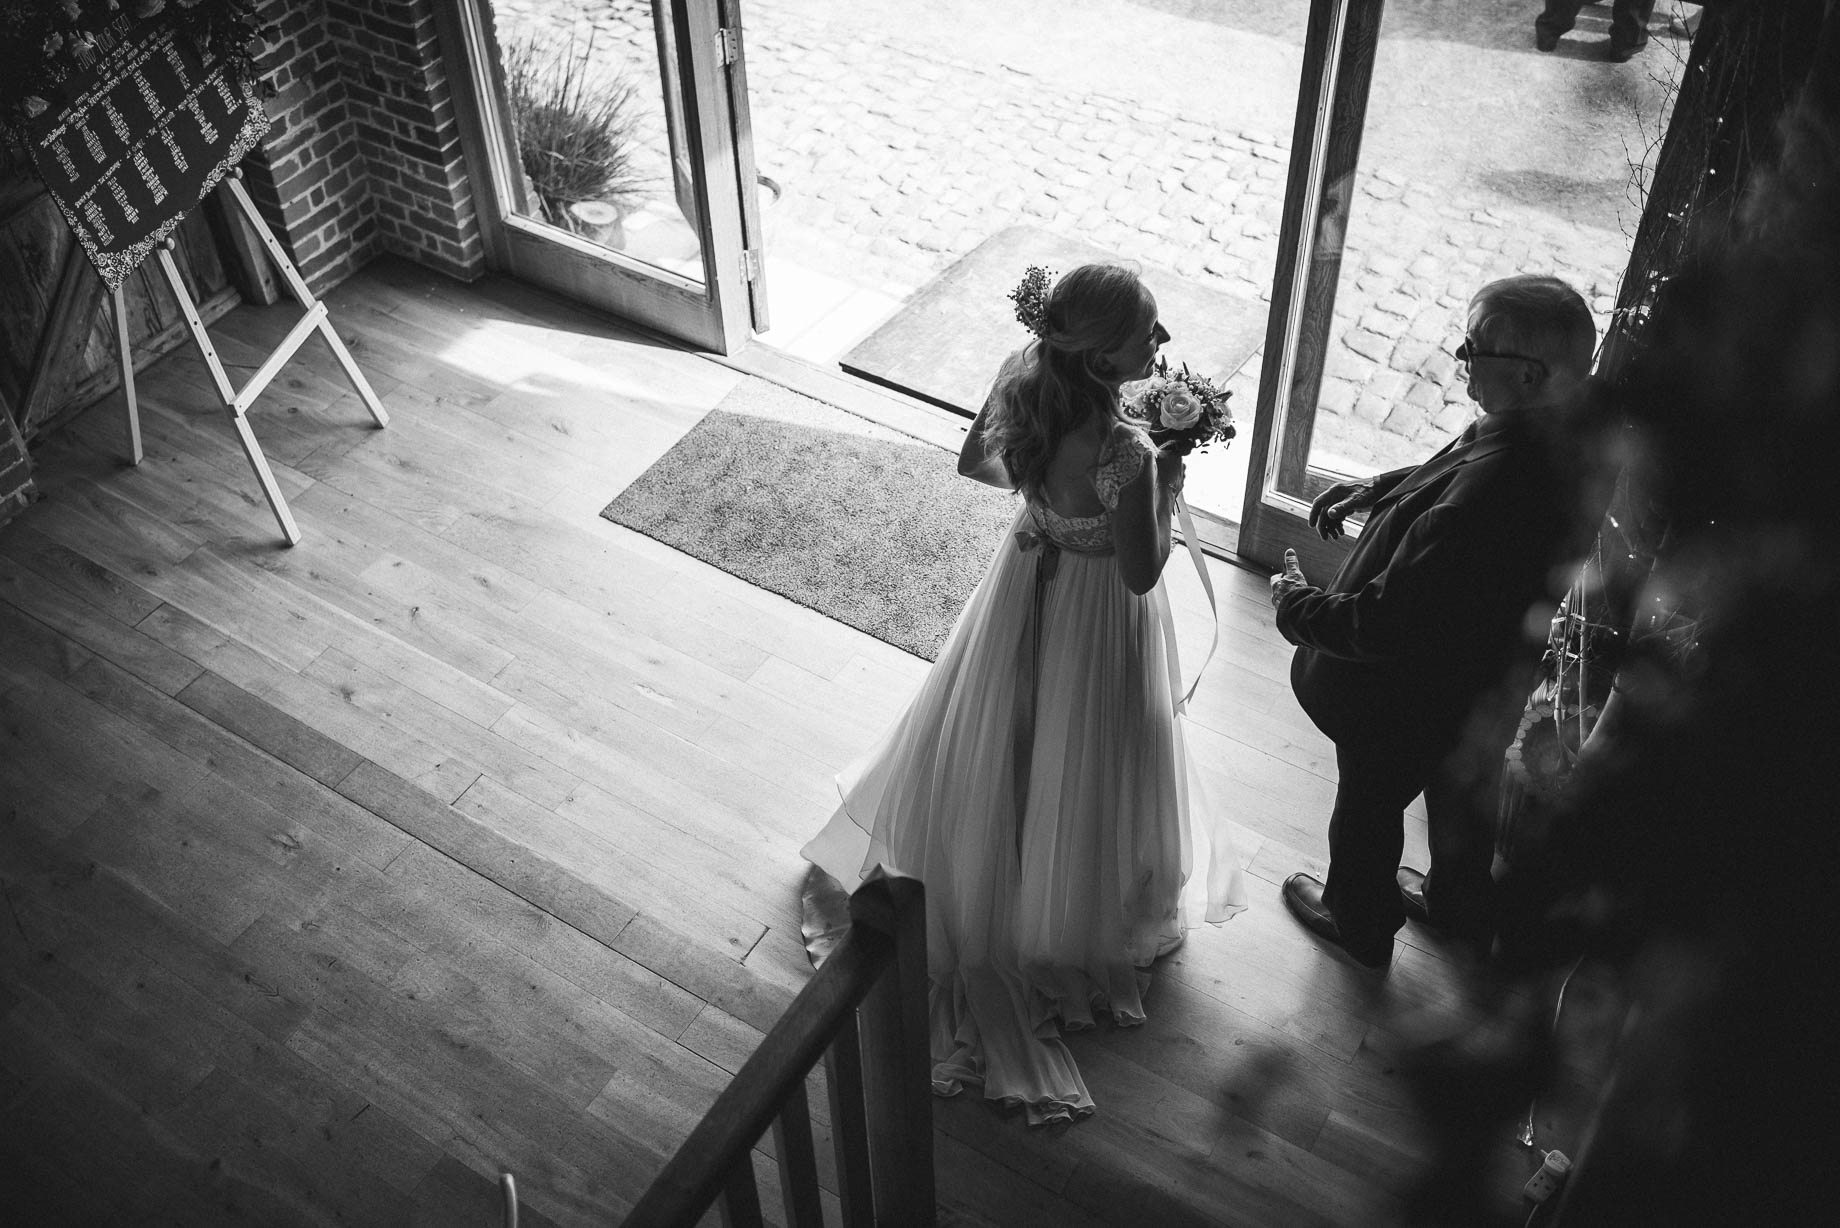 Bury Court Barn wedding photography by Guy Collier - Heather and Pat (105 of 170)